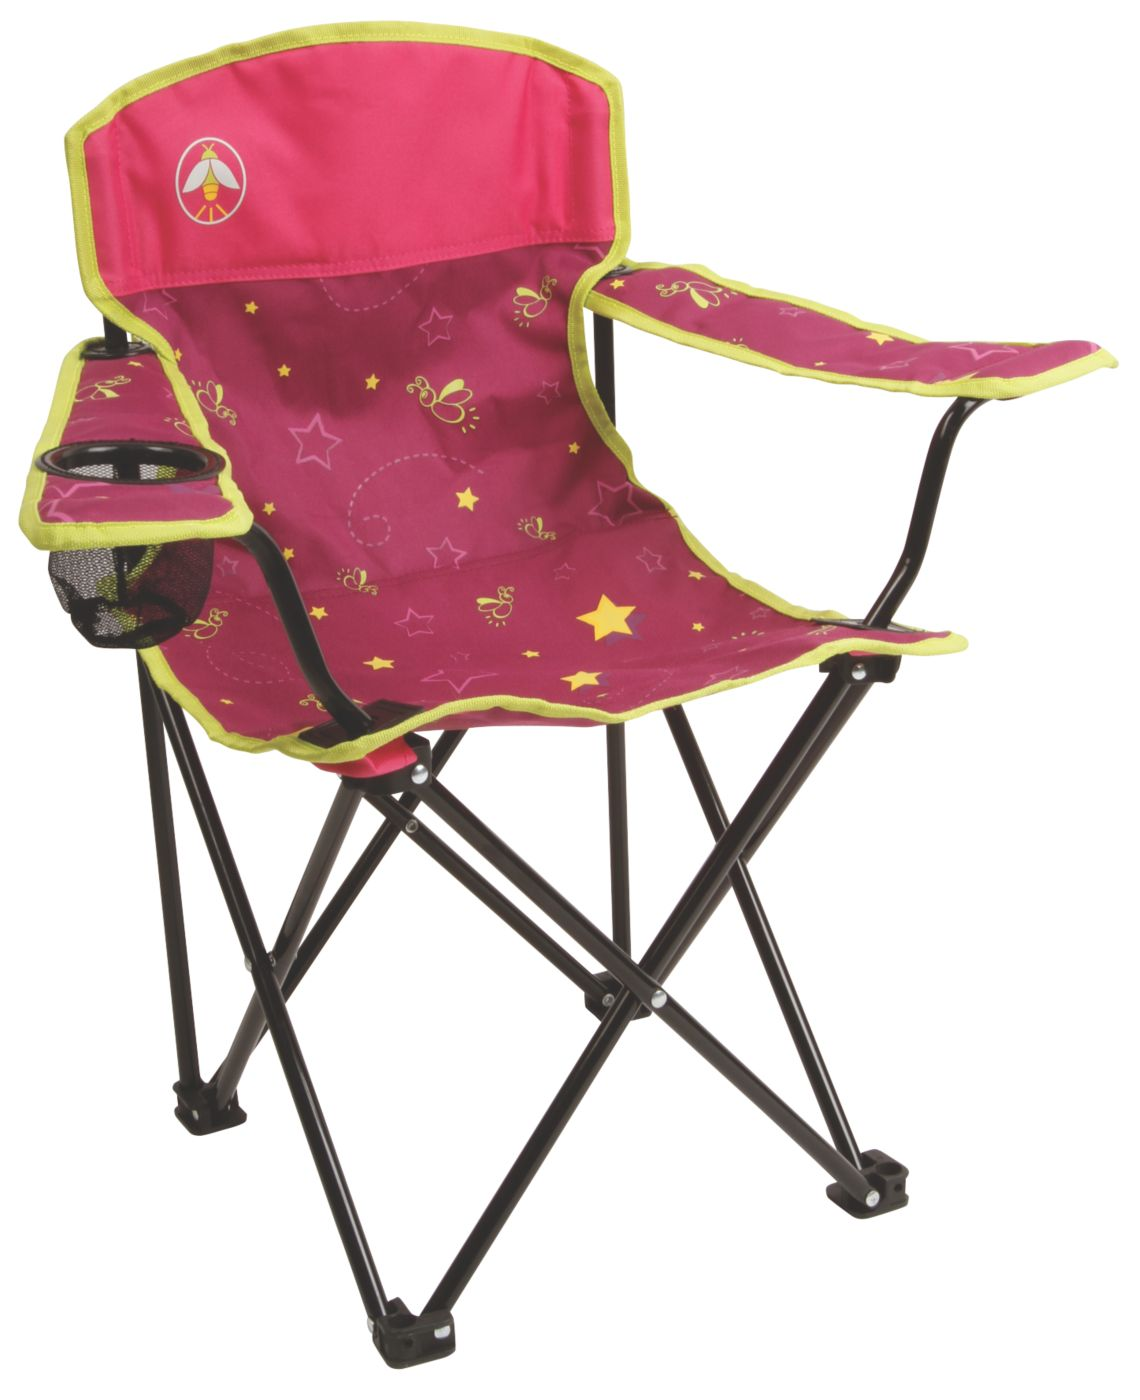 coleman oversized quad chair with cooler pouch cover hire gumtree furniture and games